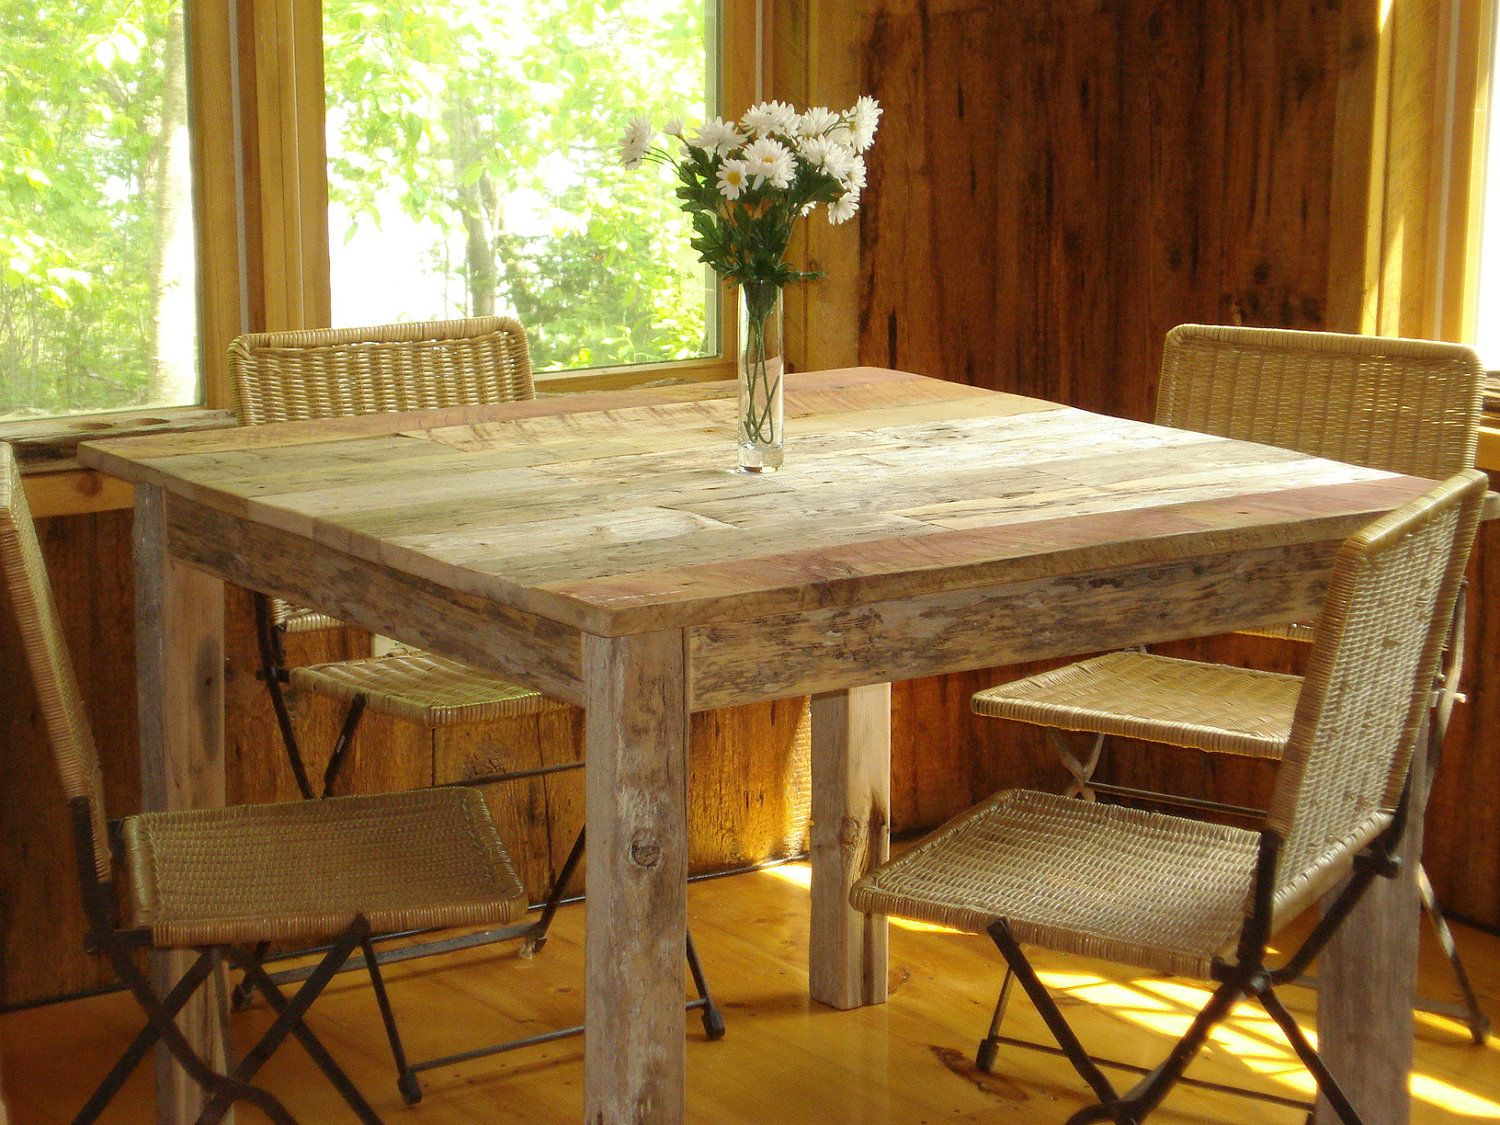 Dining room table driftwood 38 round x 29h pinterest driftwood dining room table 40 round x 29h custom order picture coming soon 43900 via etsy watchthetrailerfo